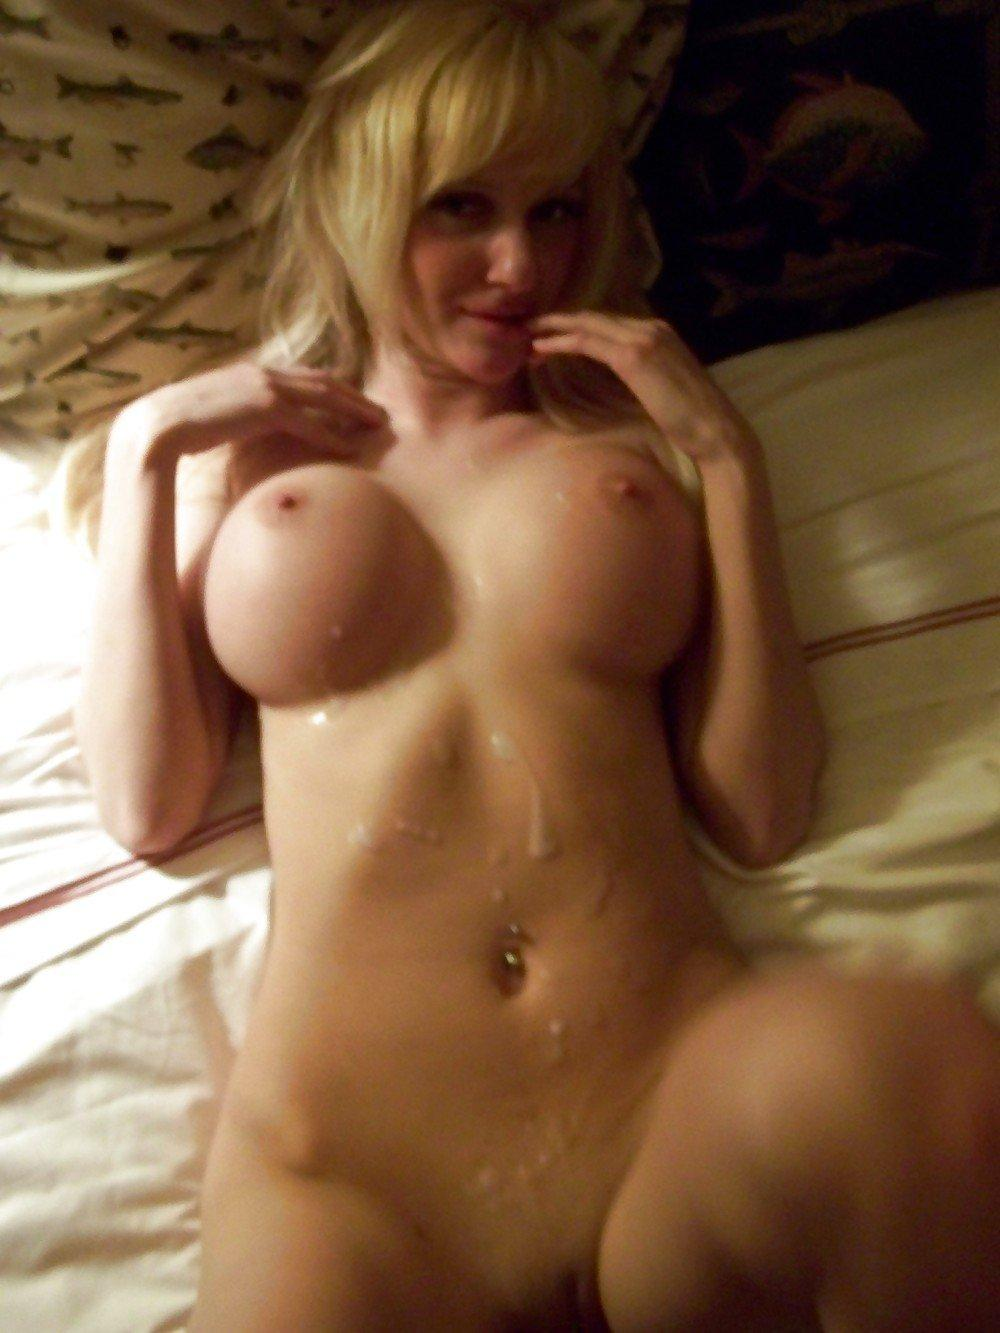 suggest amateur wife walking around house naked amateur are not right. Let's